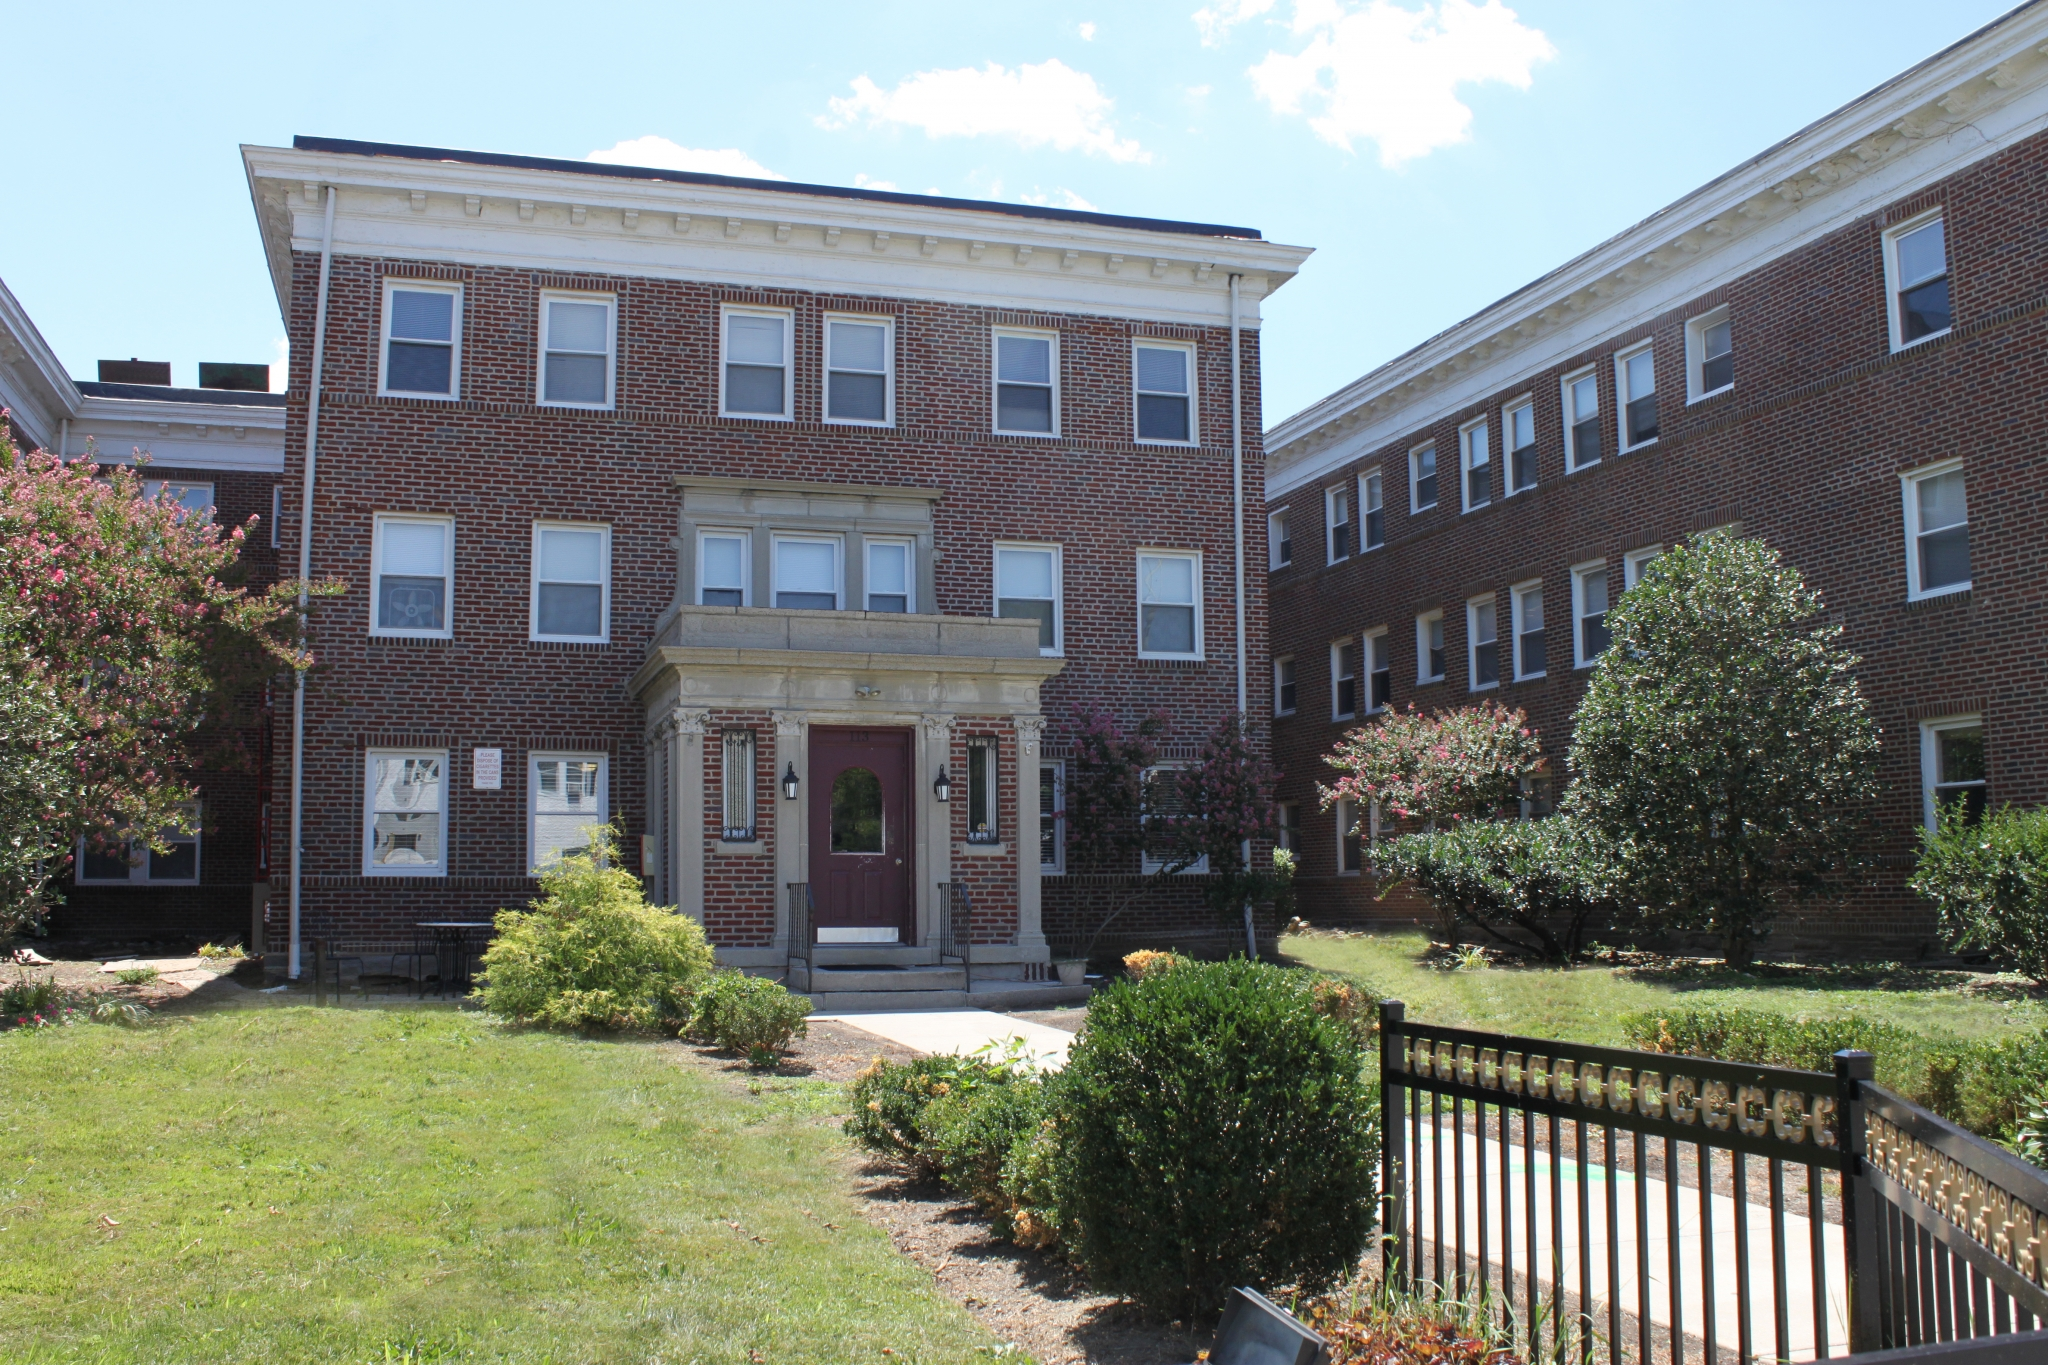 Friendly Office Staff | Ardmore PA Apartments For Rent | Suburban Court Apartments